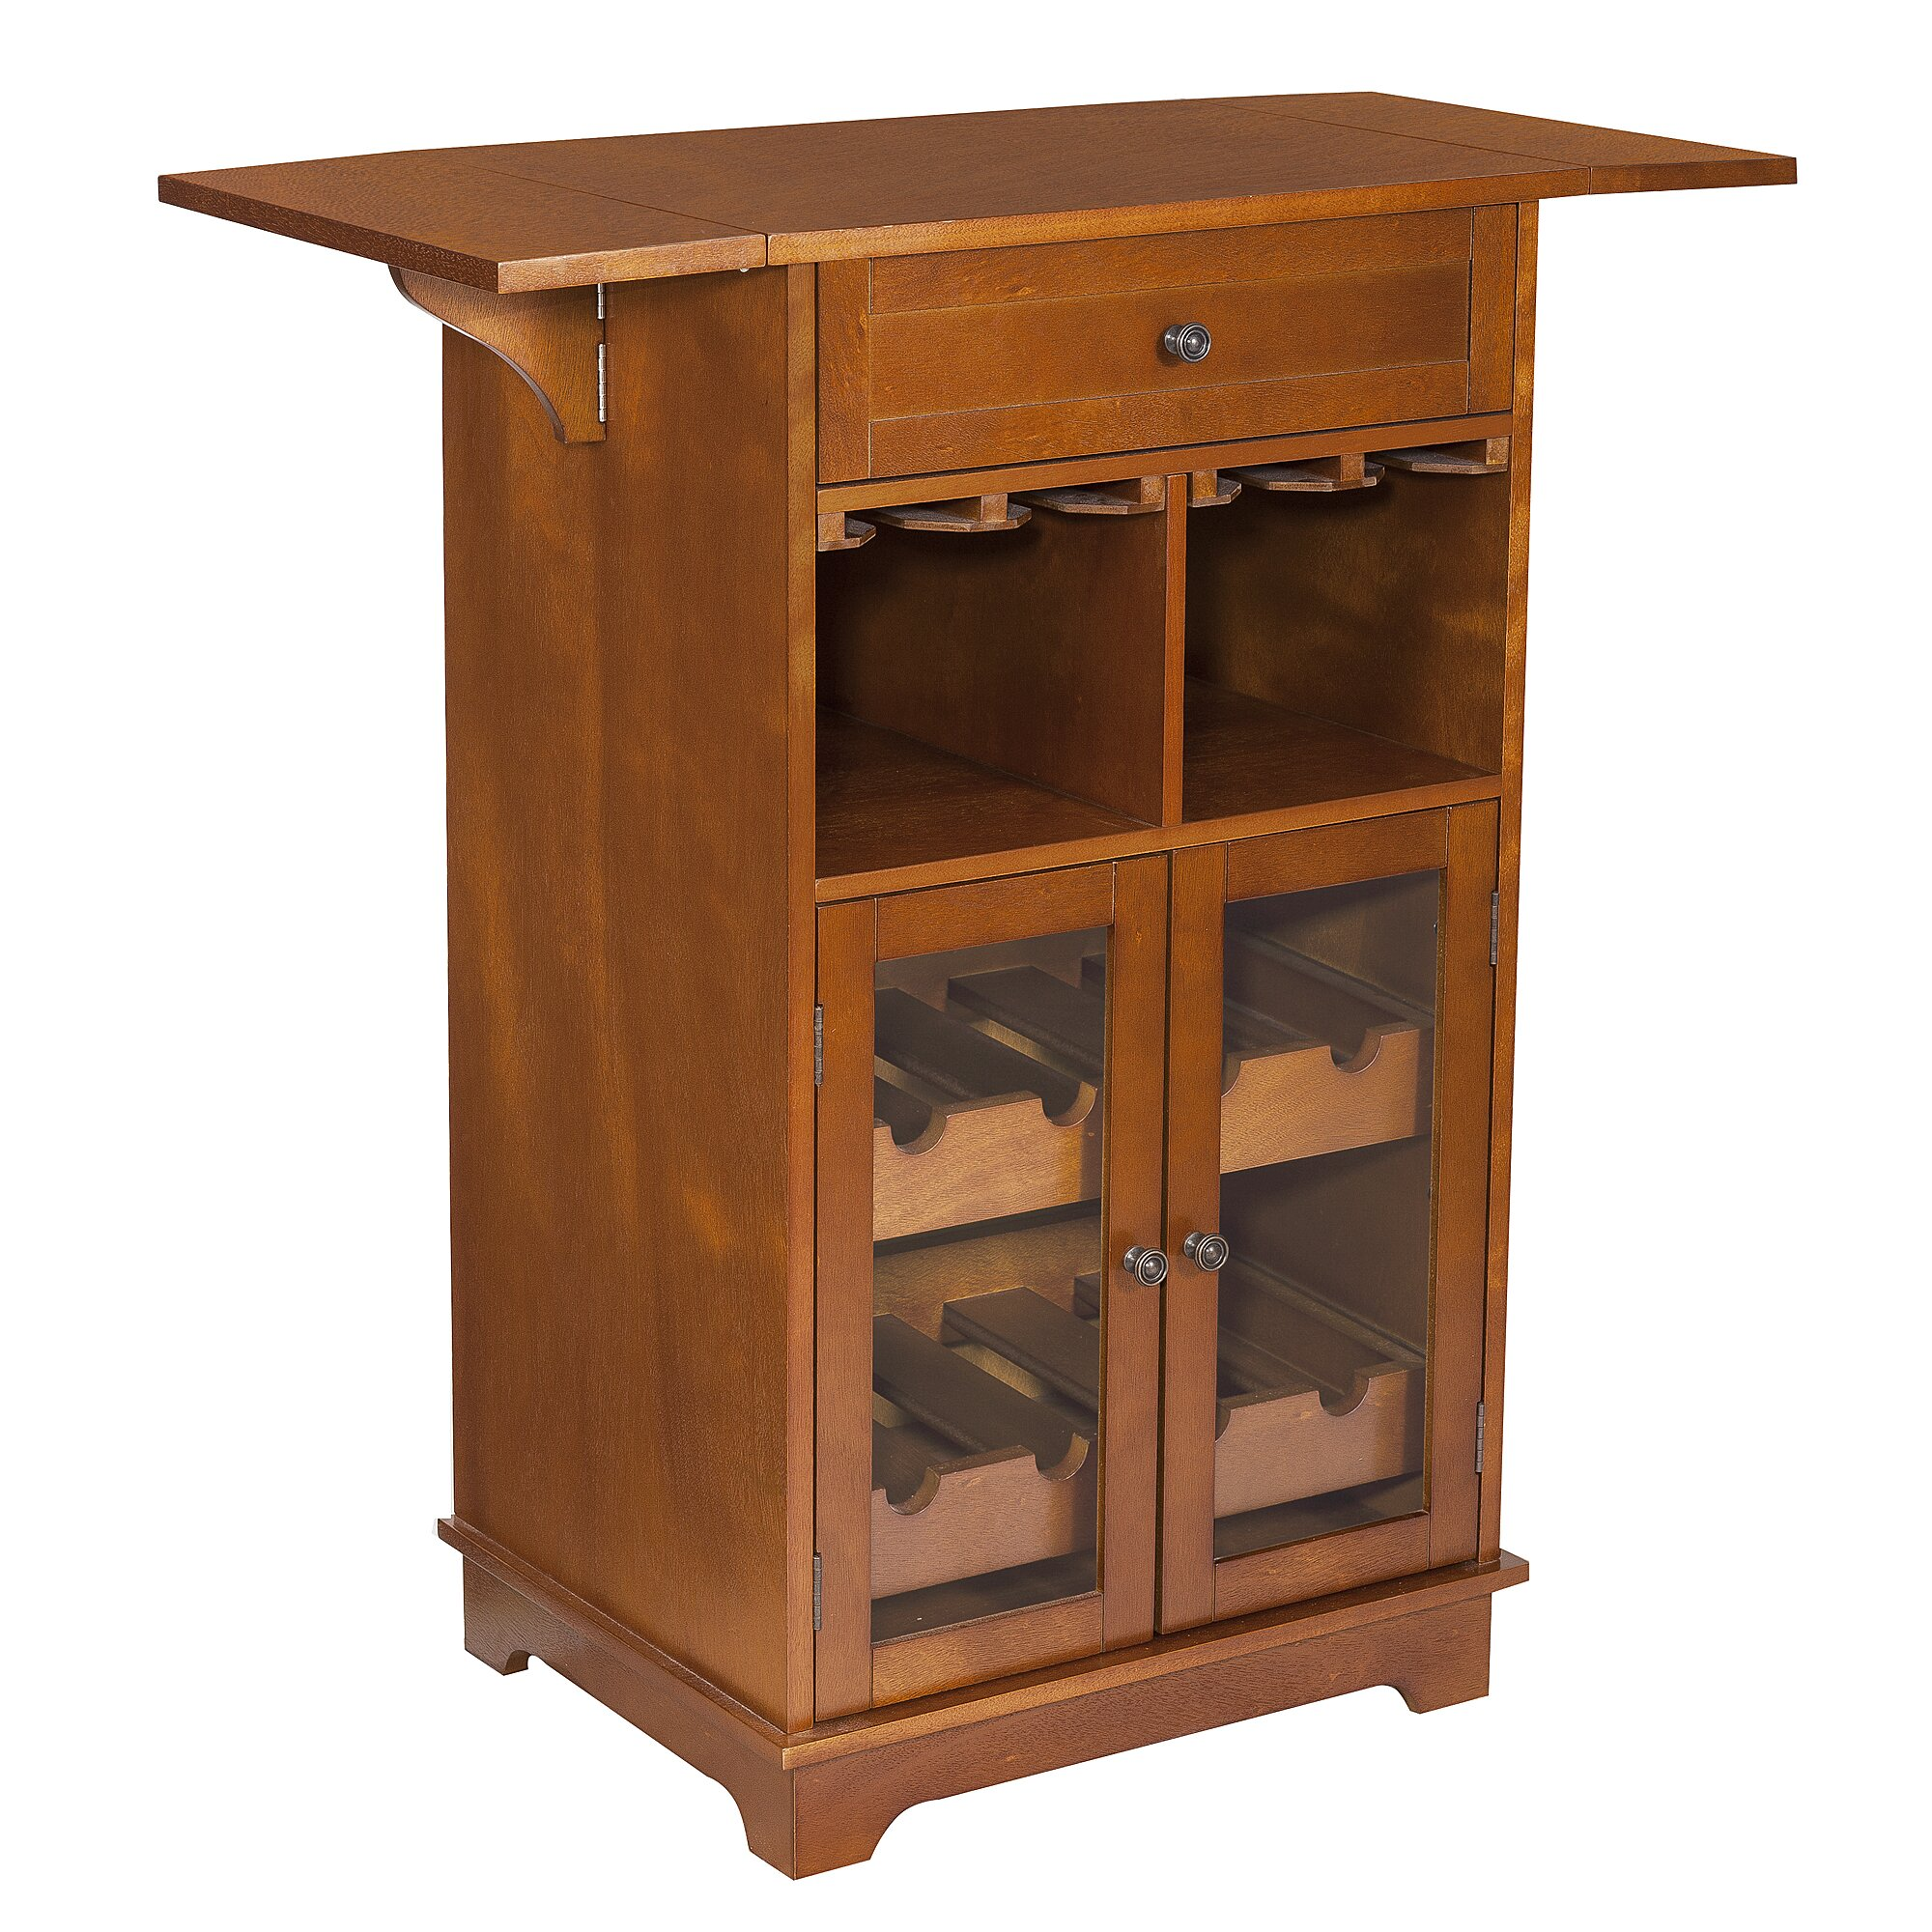 Elegant home fashions peoria 8 bottle floor wine cabinet for Floor wine cabinet